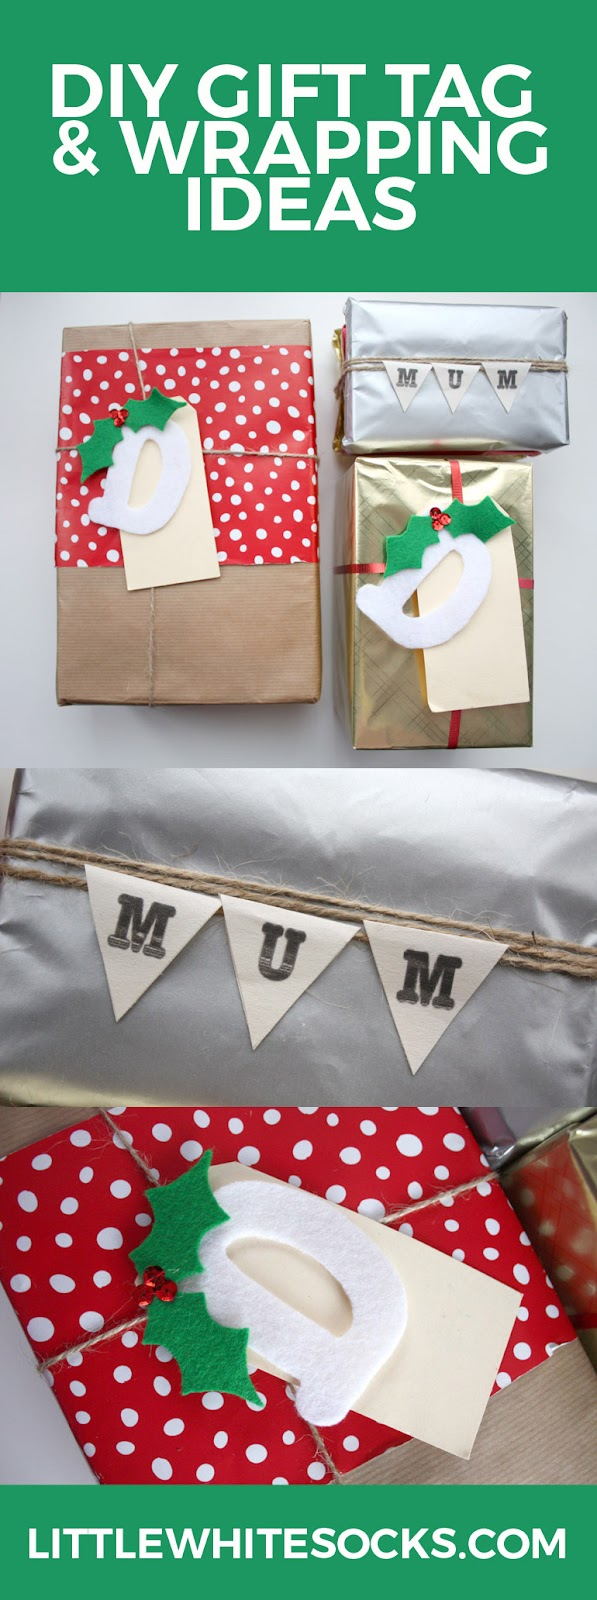 diy gift tag wrapping ideas